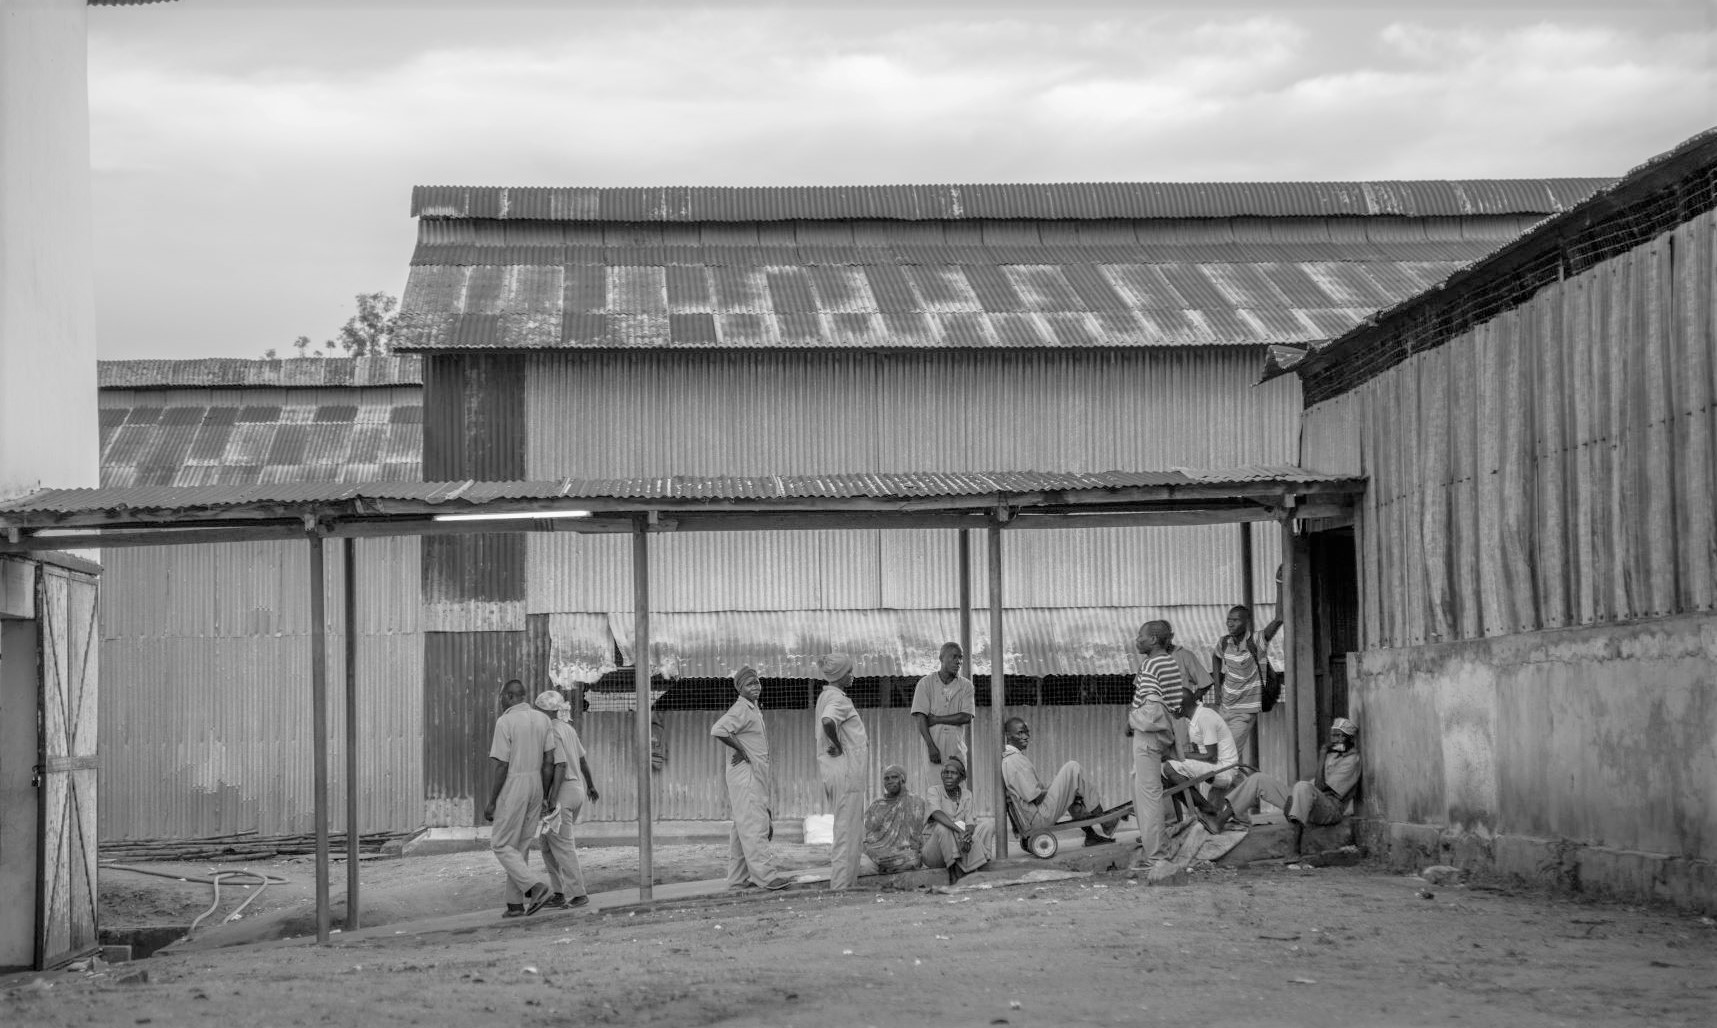 Workers and cotton gin